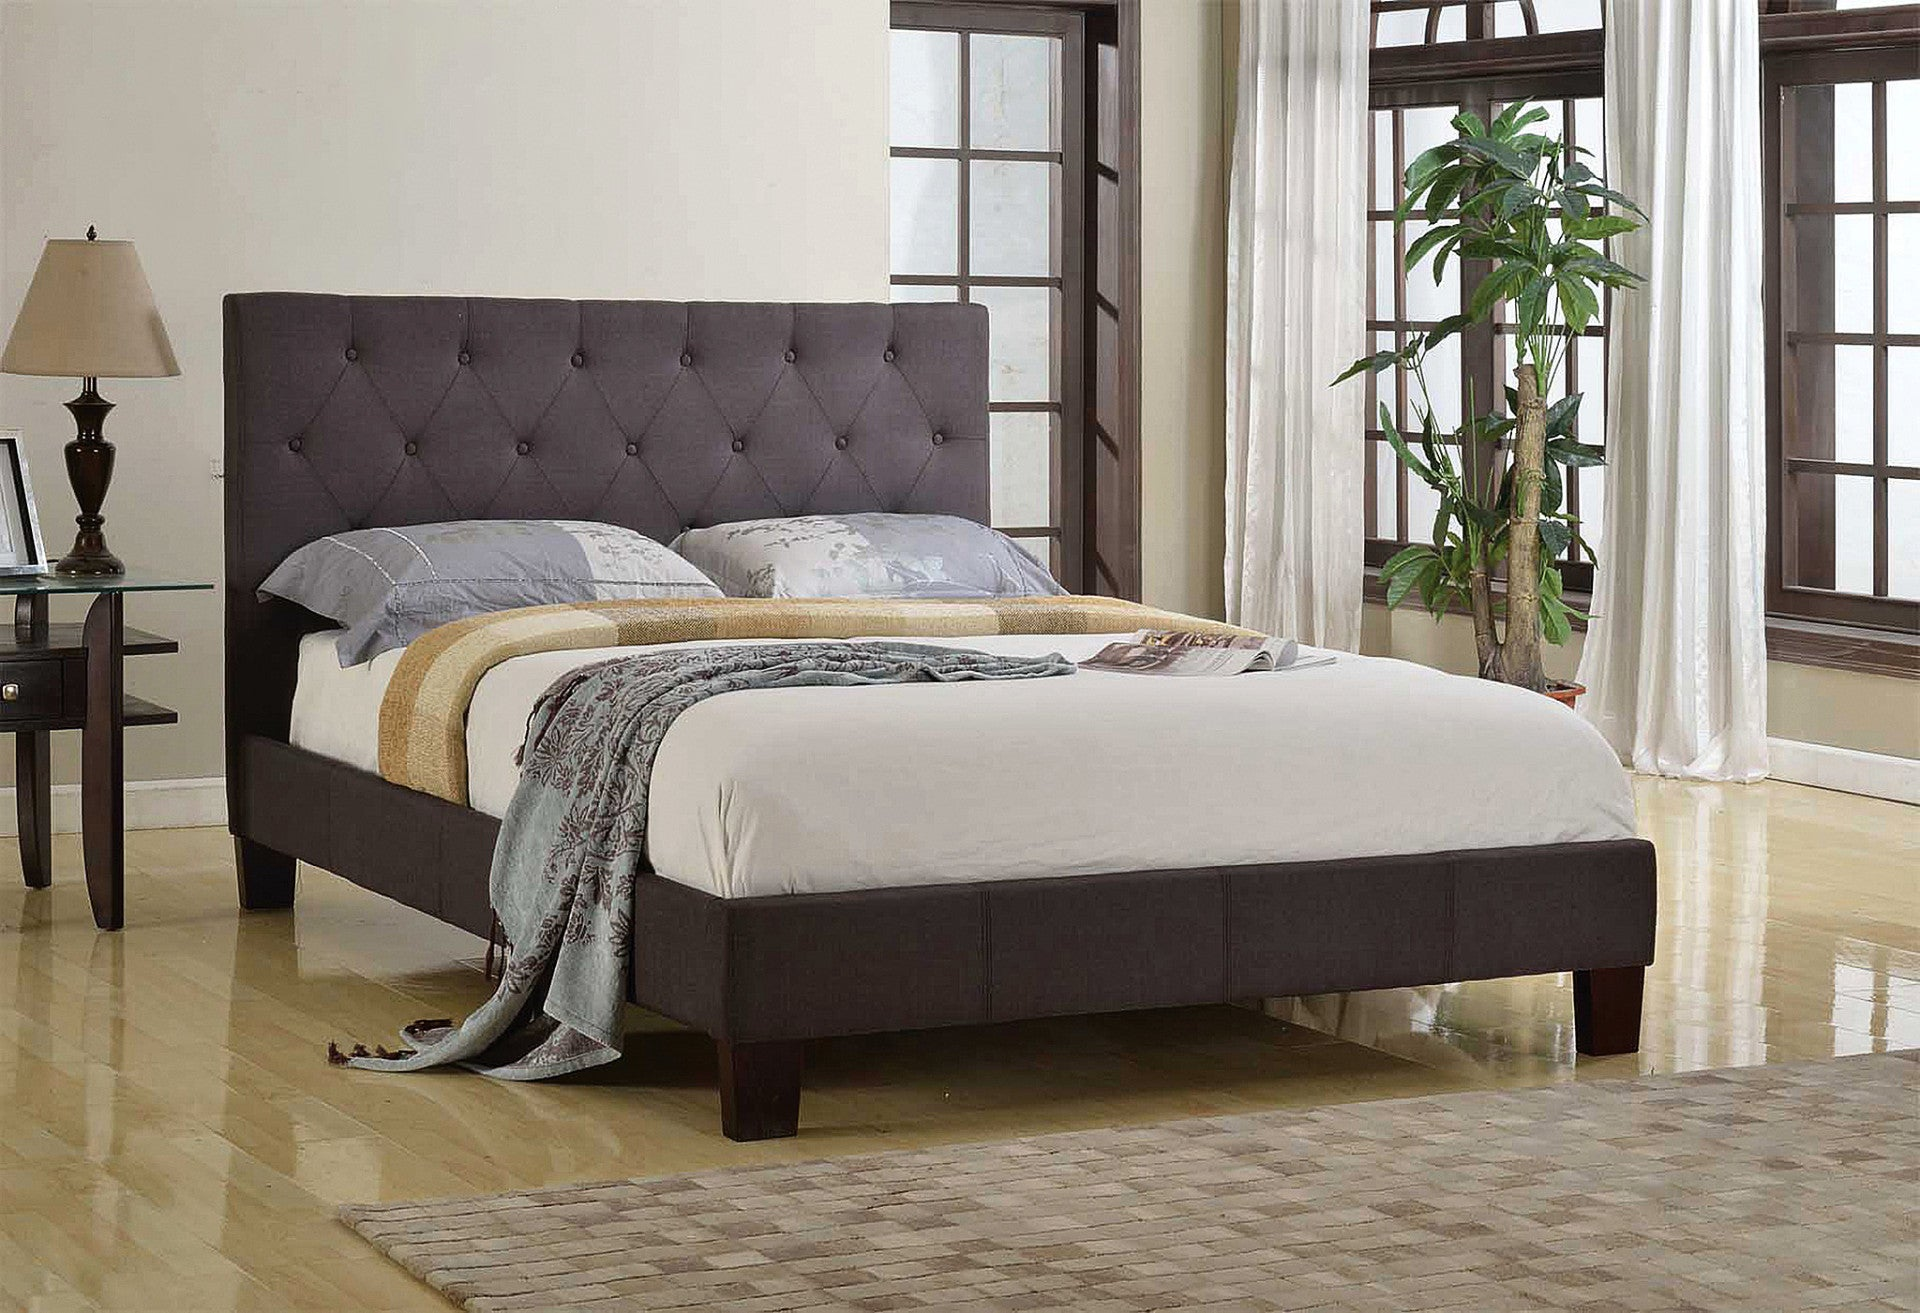 Robinson Platform Double/Full Bed - Grey Linen | Candace and Basil Furniture